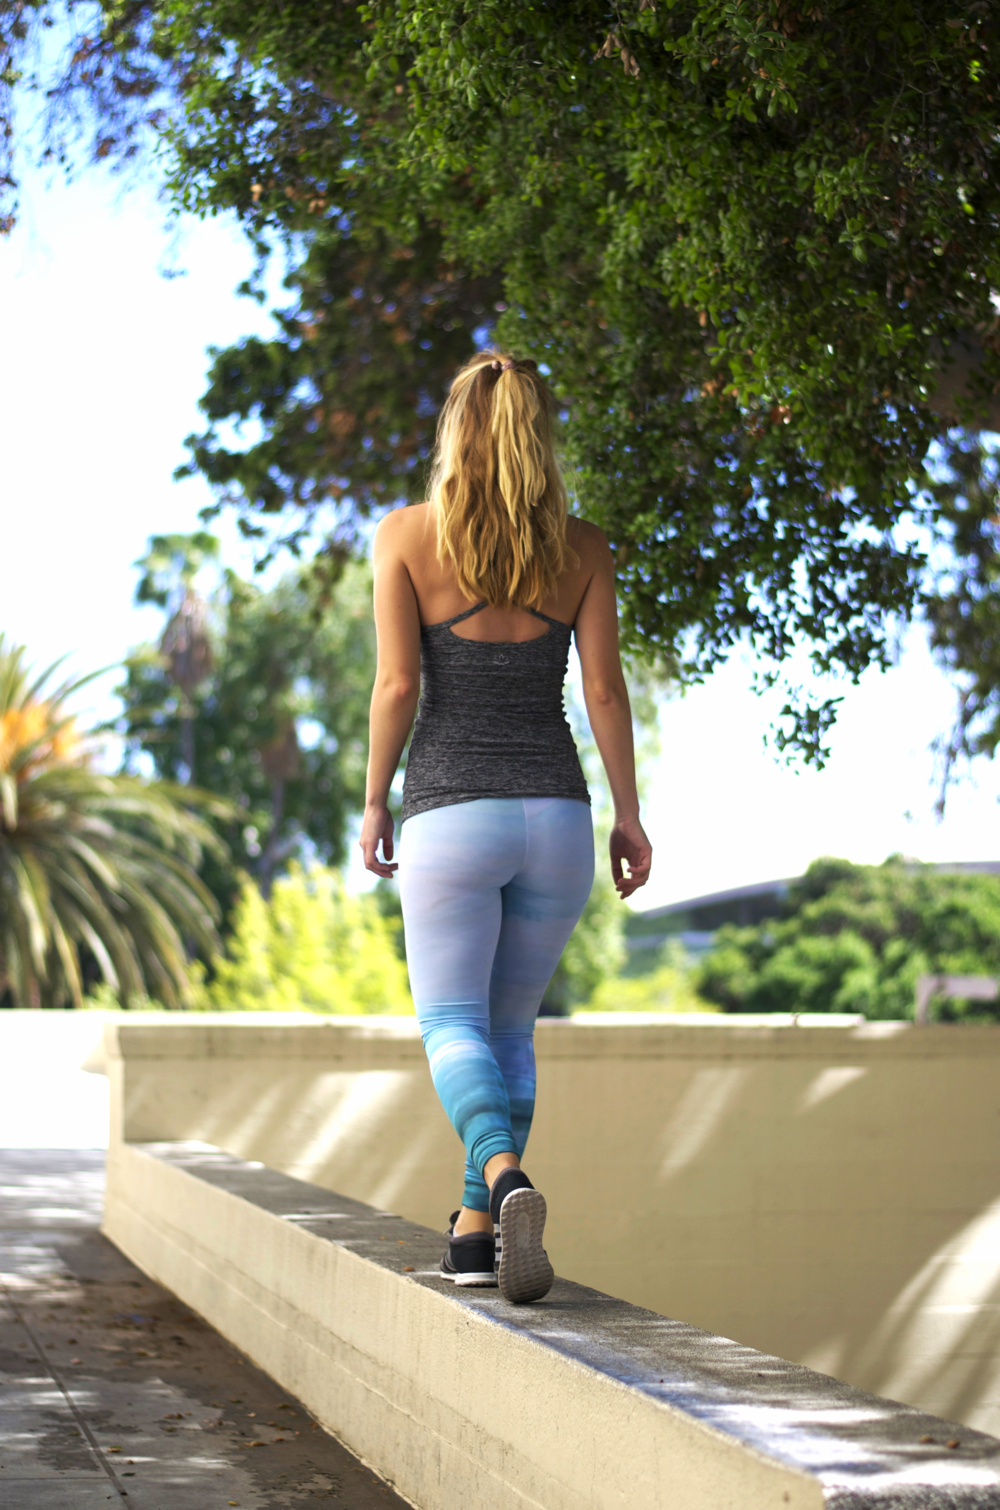 1465bfa2a233 I am so obsessed with these... my new yoga pants featuring my art as the  print are up for purchase on my Society6 website! Here are some photos  debuting the ...